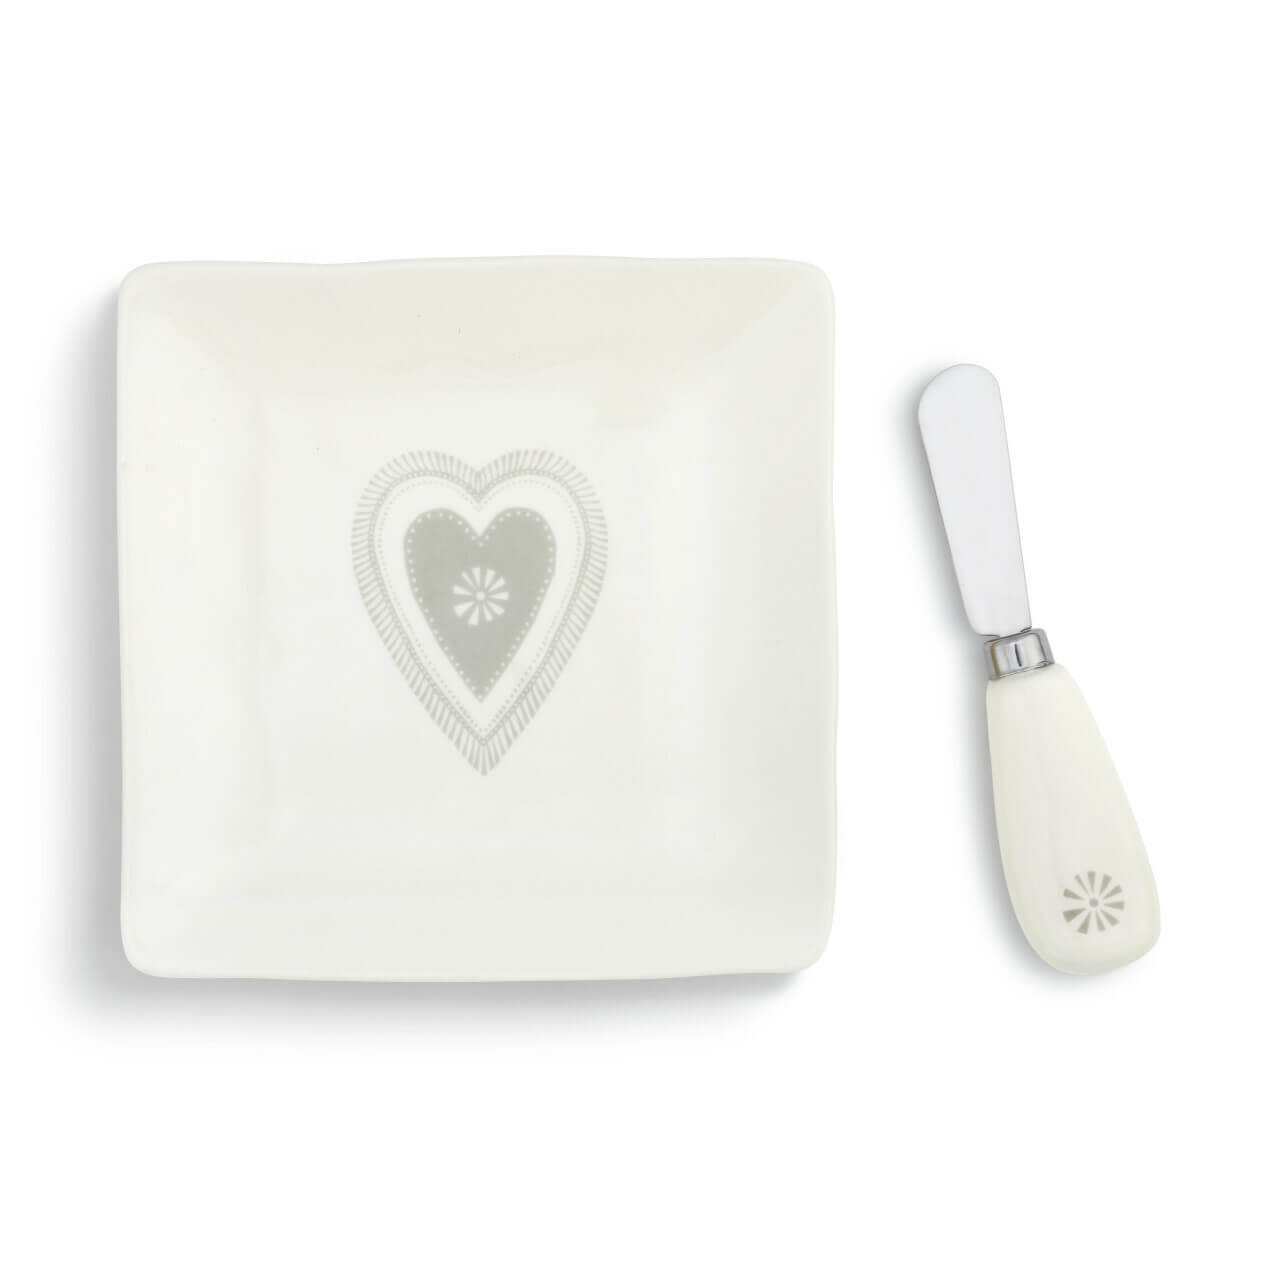 A harmonious combination of function and beauty for hosting and parties, the Heart Plate with Spreader Set is a glazed stoneware appetizer plate and stainless steel spreader with ceramic handle. Plate bears a simple, gray heart motif and the spreader handle has a tiny burst of design in the same shade of gray.